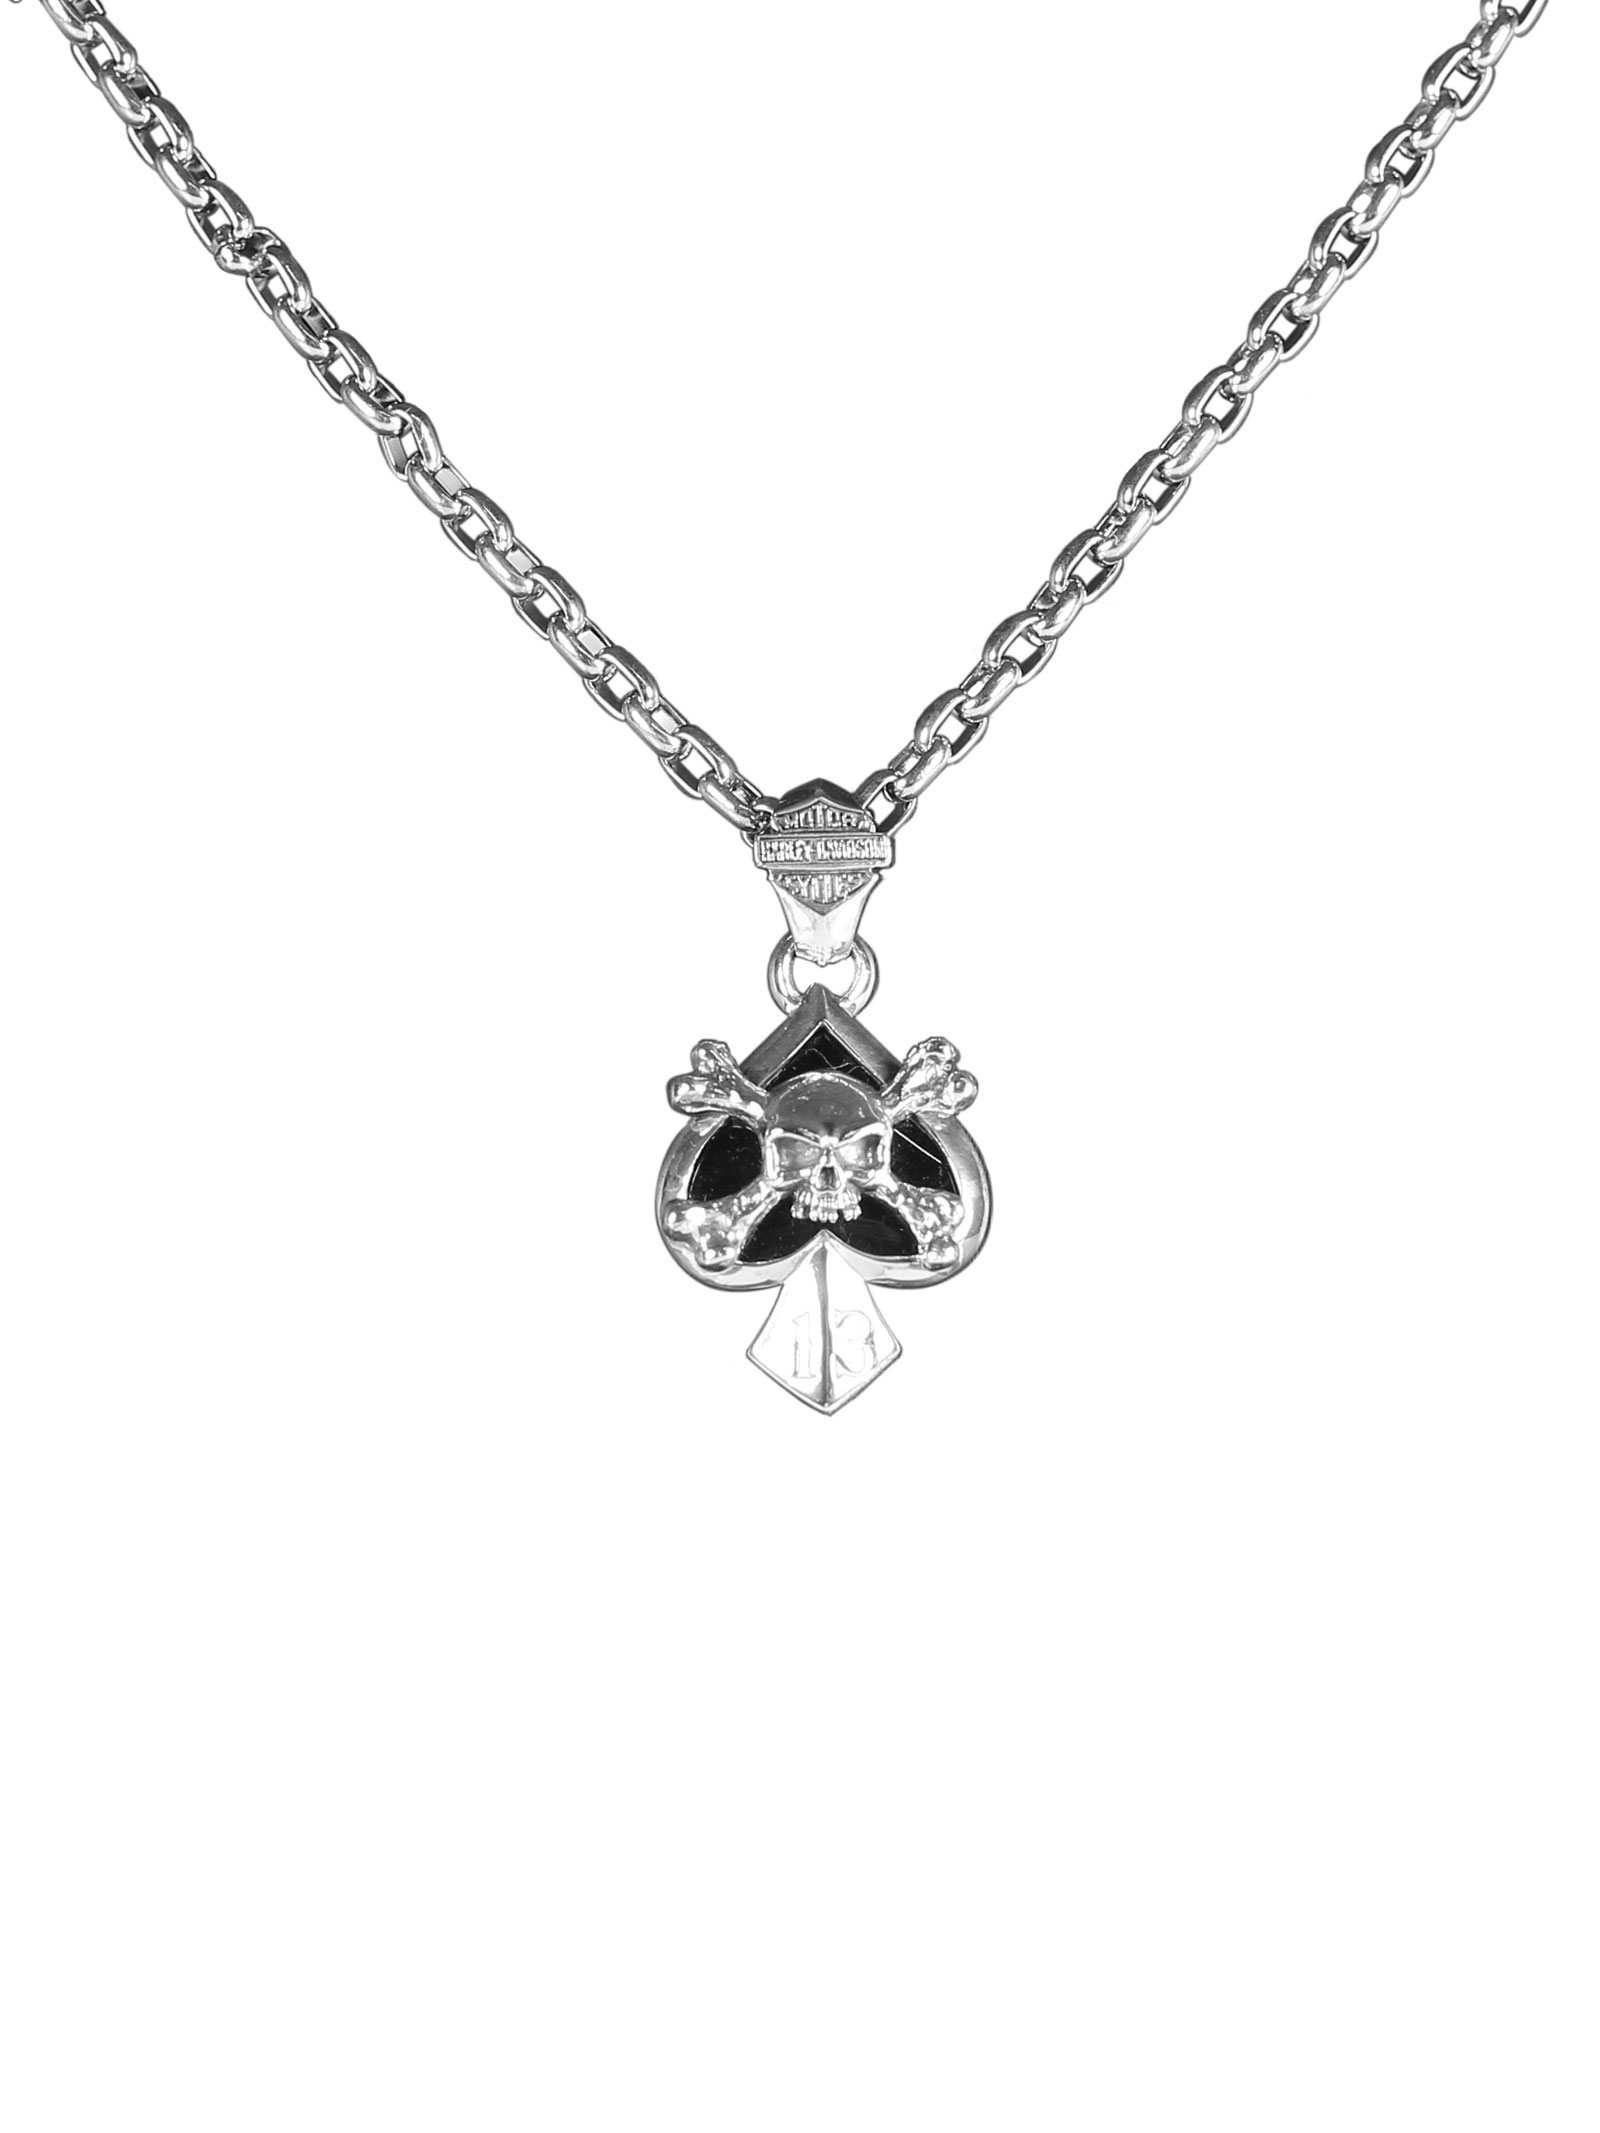 Harley davidson pendant silver at thunderbike shop for Irish jewelry stores in nj